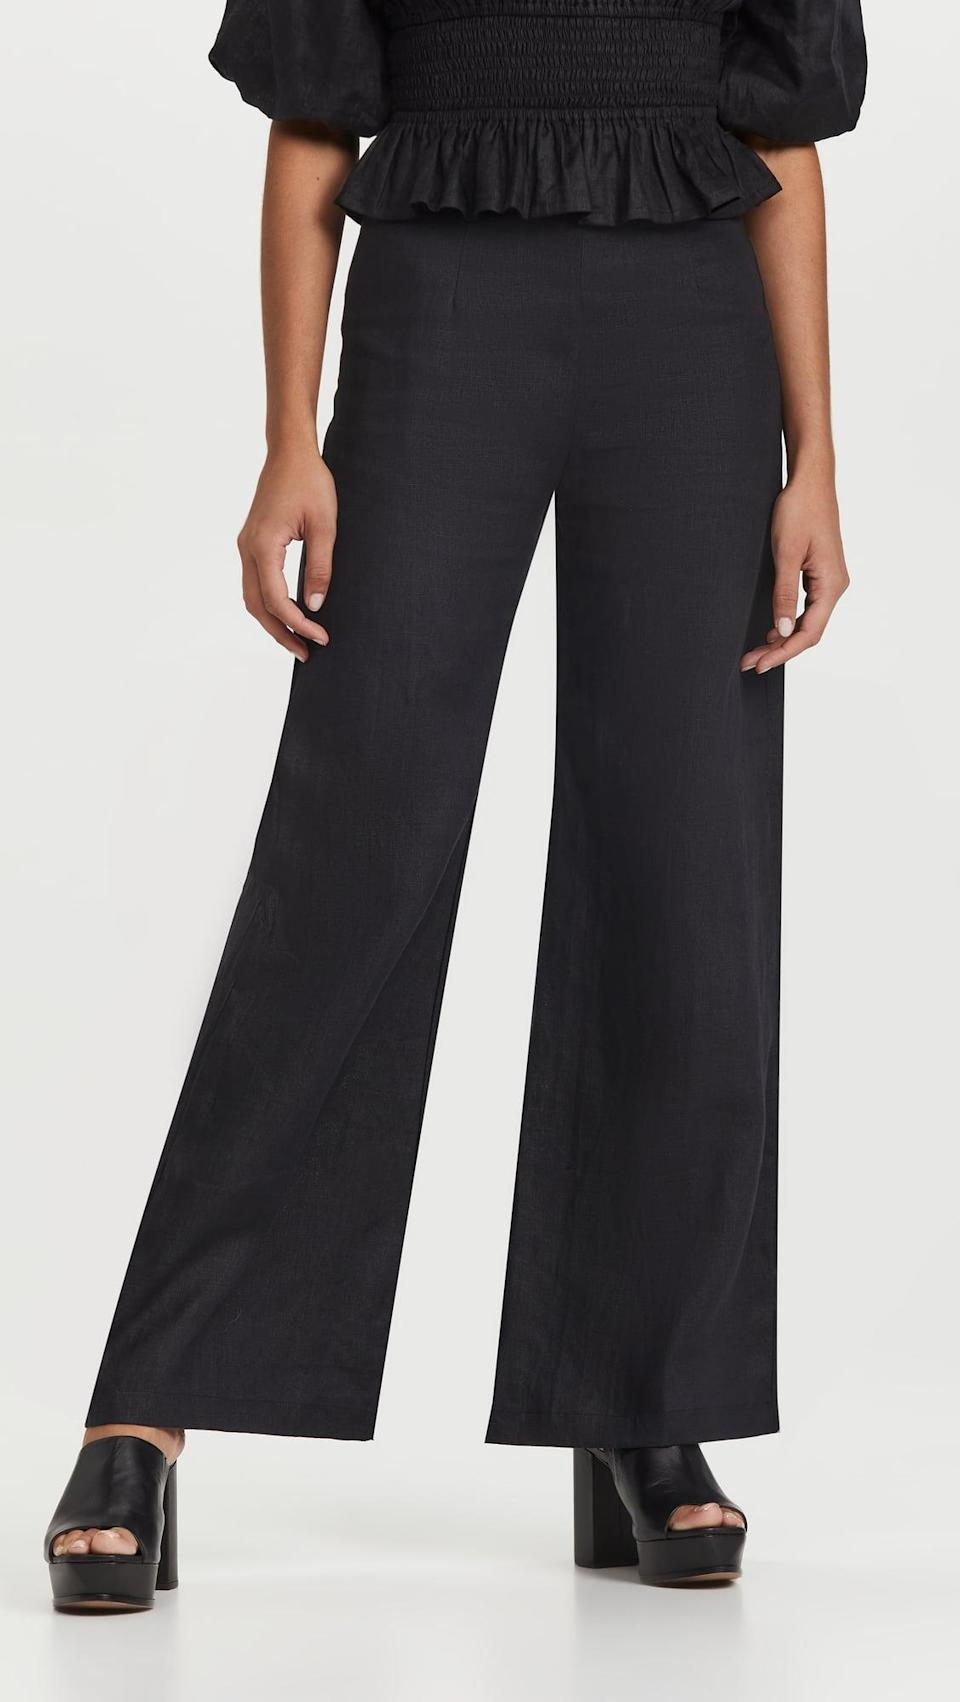 <p>Everyone needs a pair of great black pants in their closet. These <span>Faithfull The Brand Ottavio Pants</span> ($229) have a wide leg that's not too exaggerated for everyday wear, and you'll love them.</p>